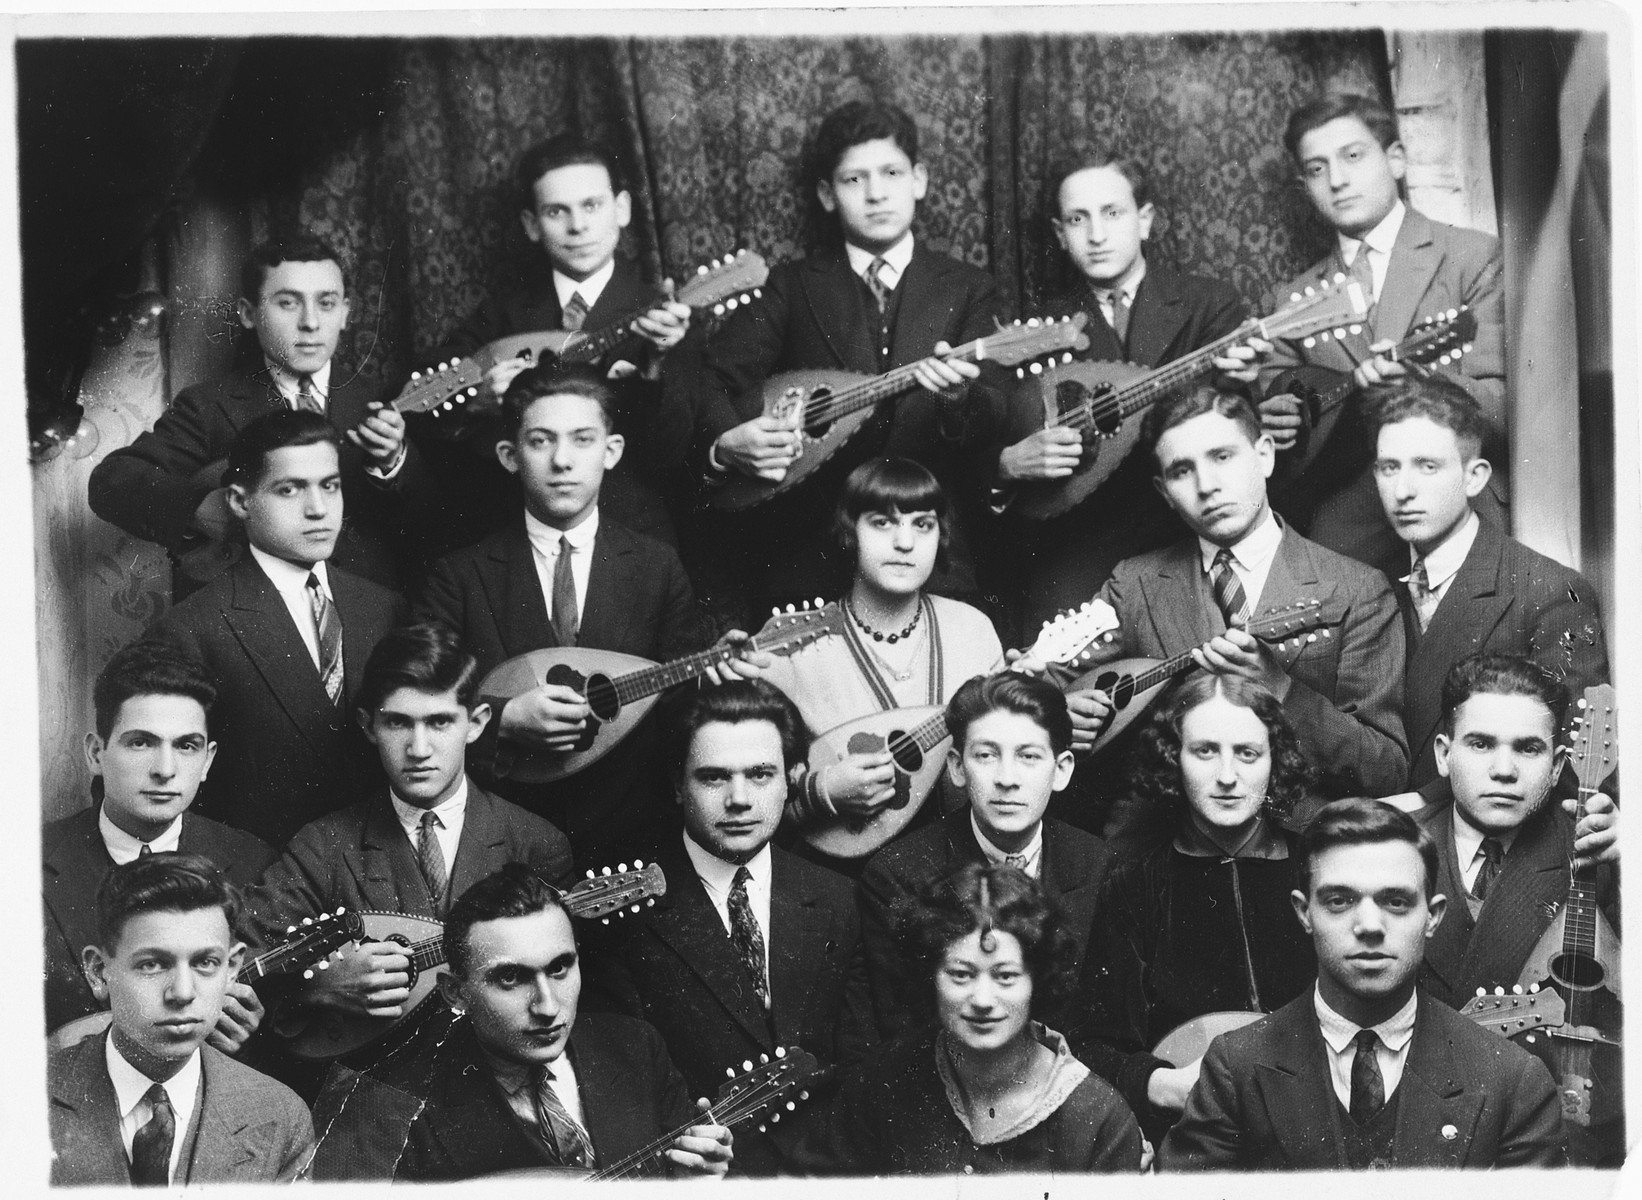 Group portrait of members of a Jewish youth movement mandolin band in Warsaw.  The young men and women belong to the Poale Zion Zionist youth movement.